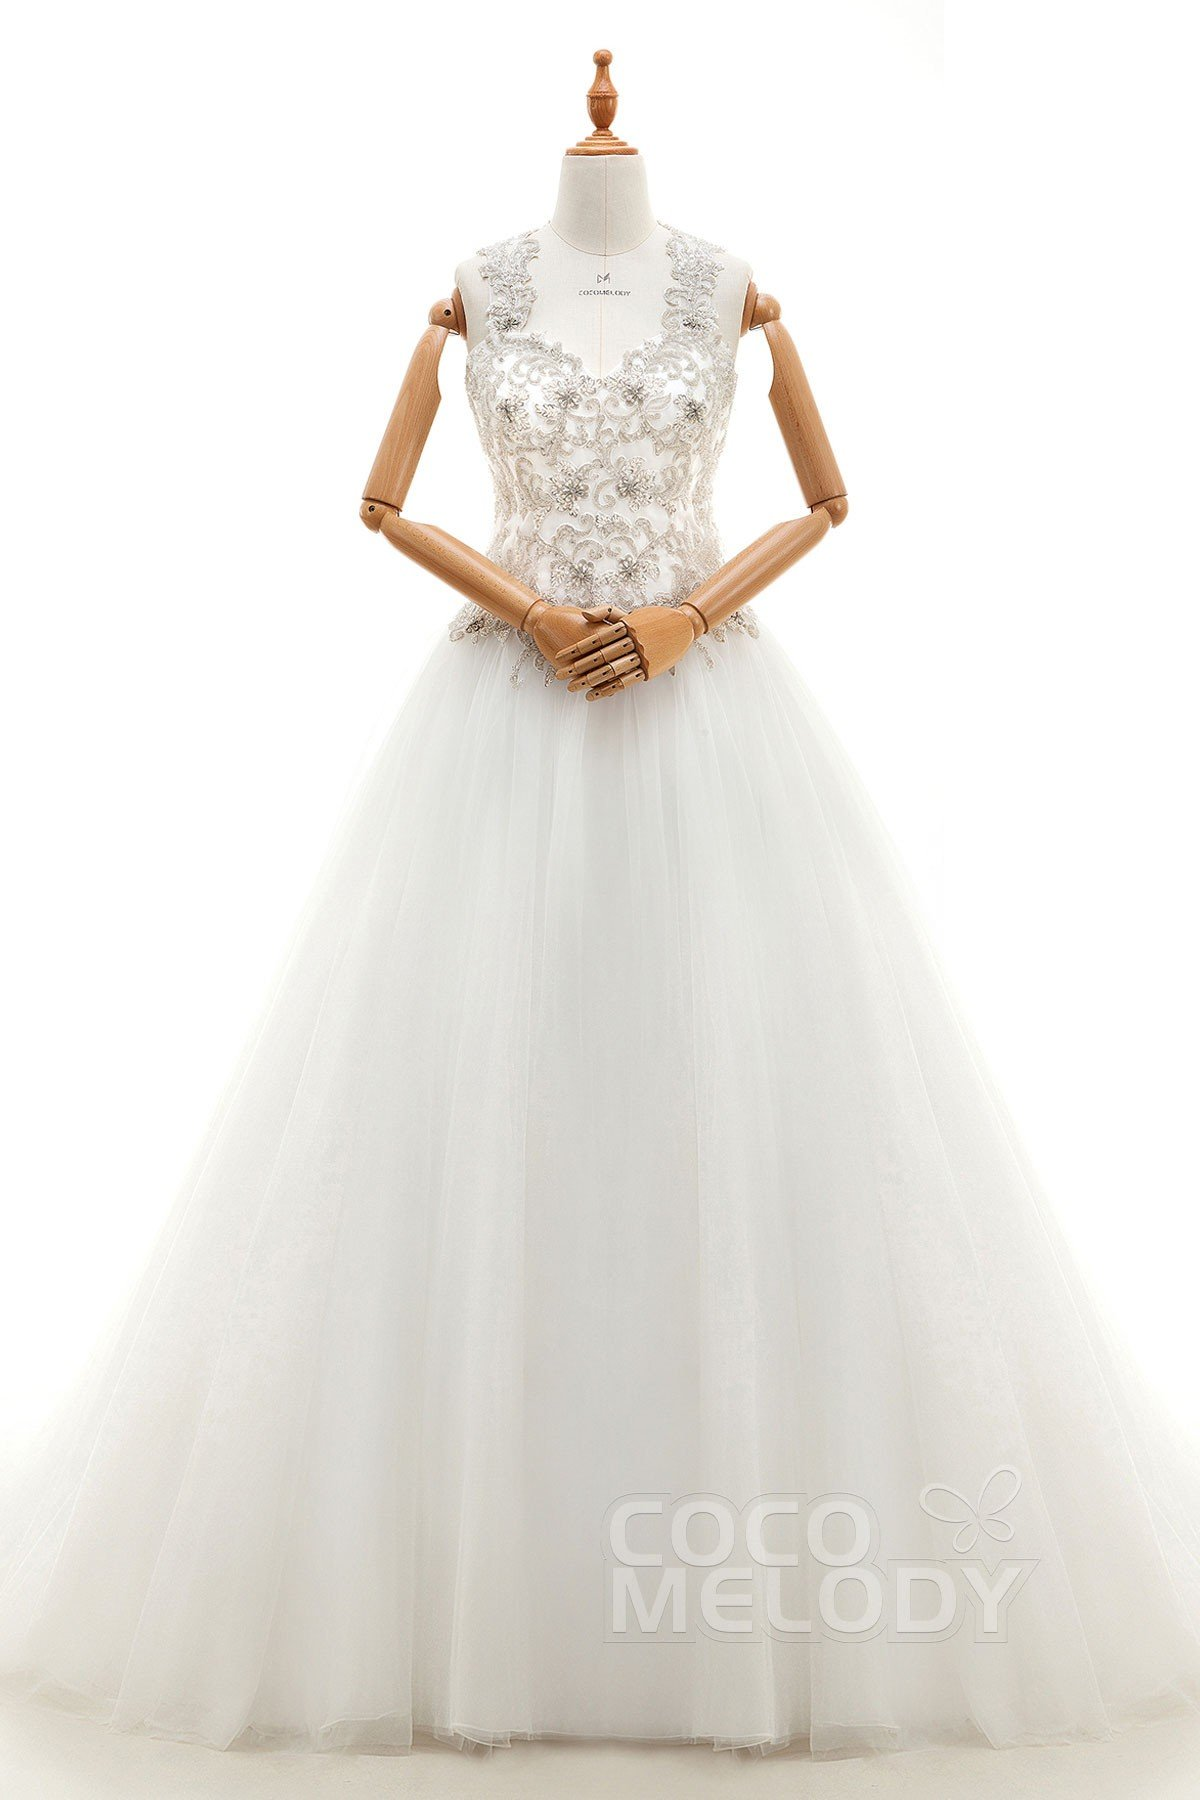 Fantastic A-Line Straps Natural Court Train Tulle Ivory Sleeveless Key Hole Wedding Dress with Appliques and Beading LD3940